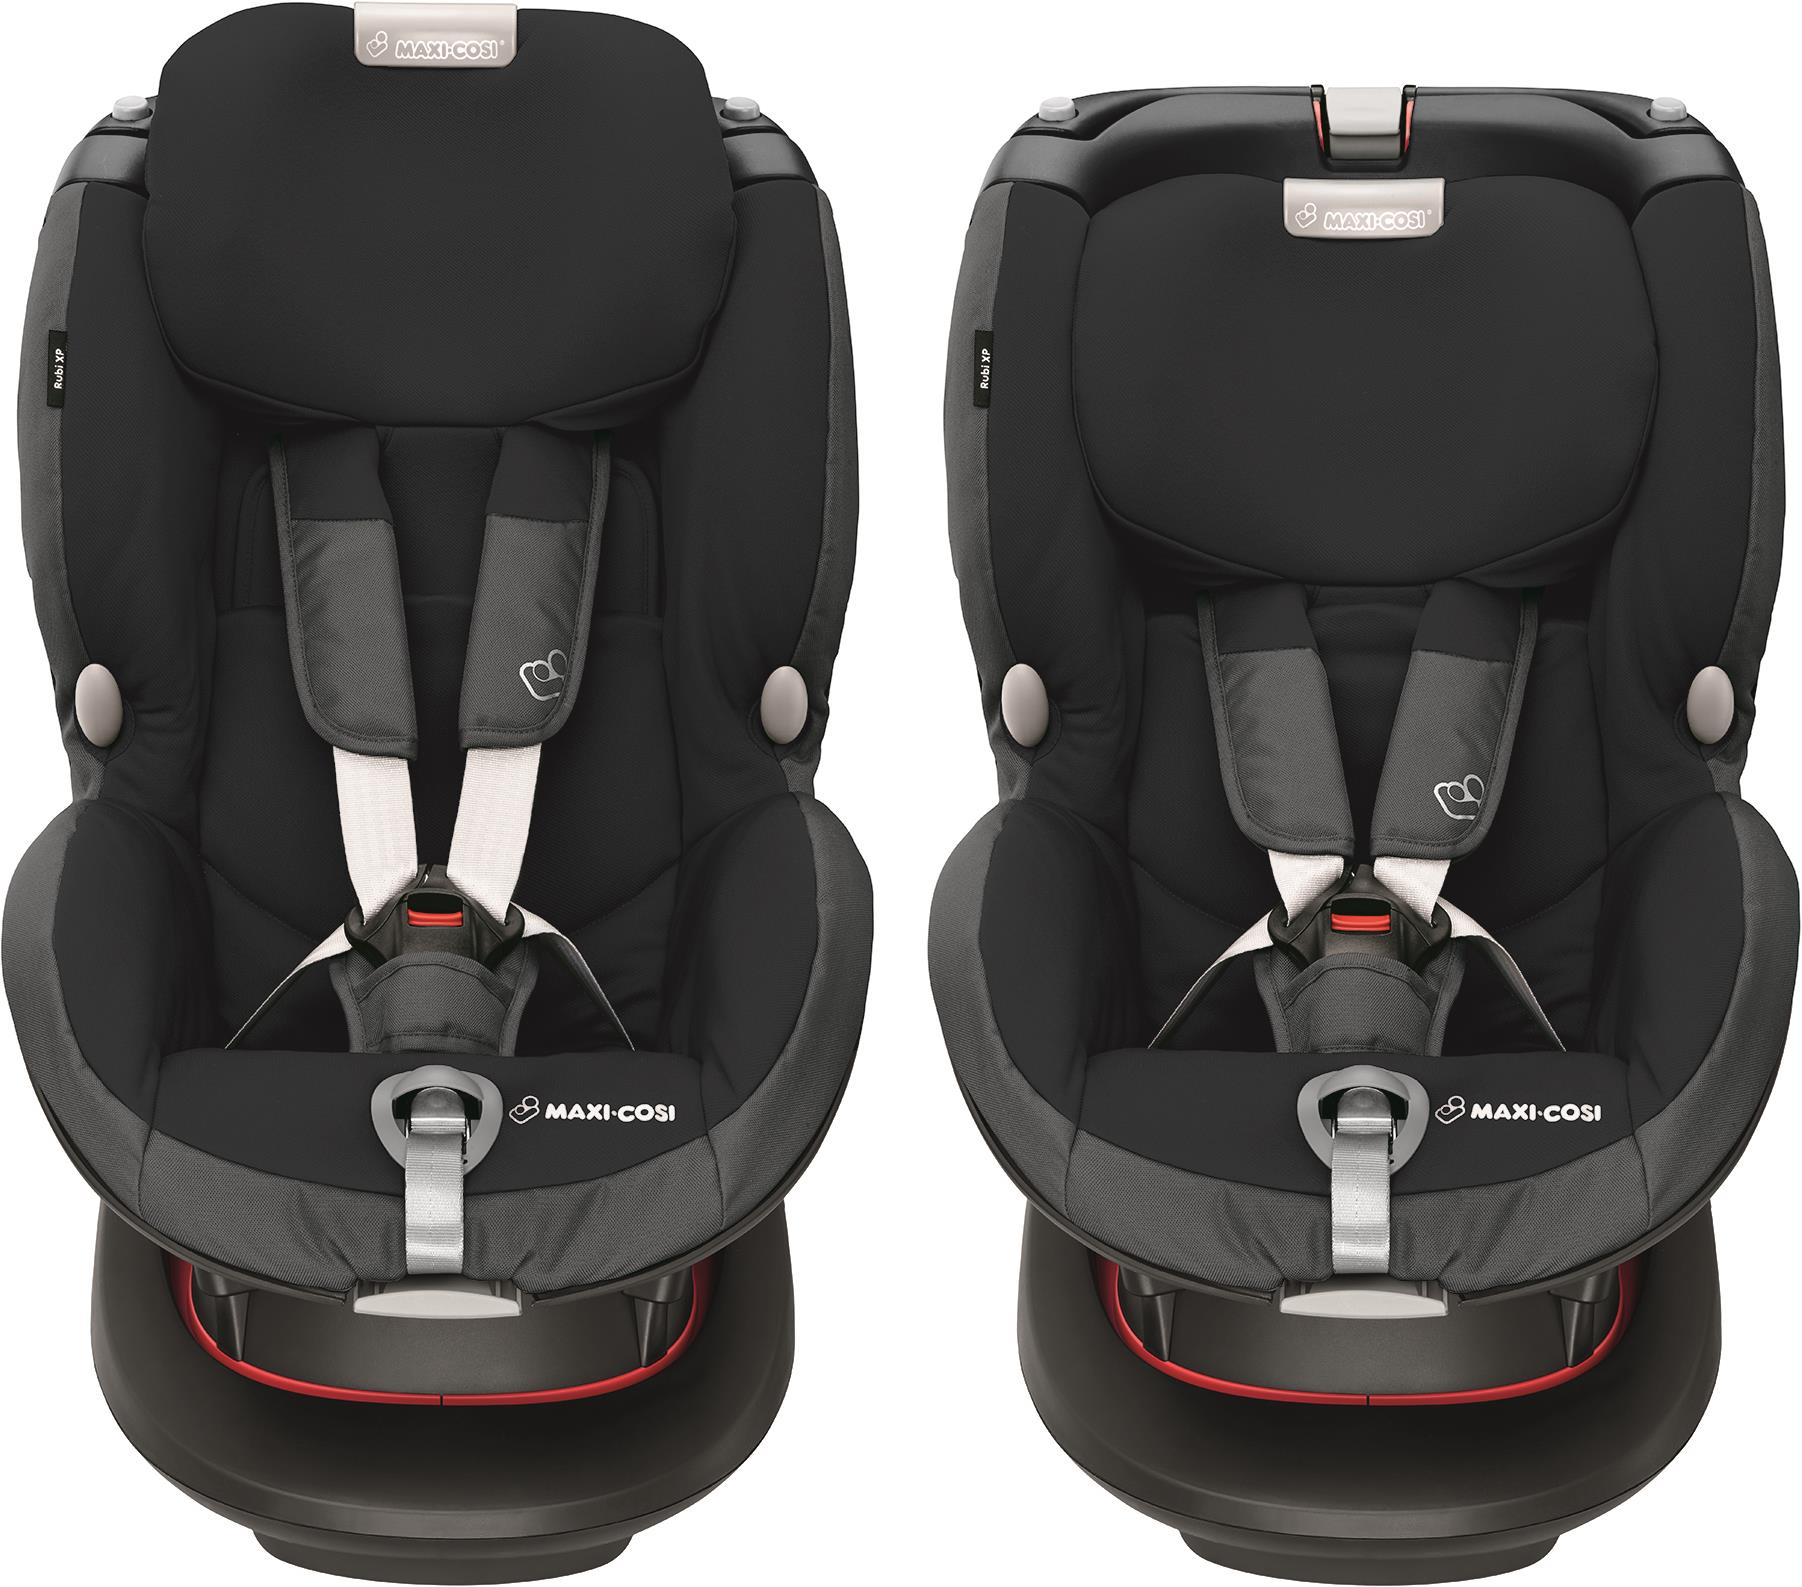 Maxi-cosi Auto-kindersitz Rubi Xp Poppy Red 2018 Rubi Xp Night Black